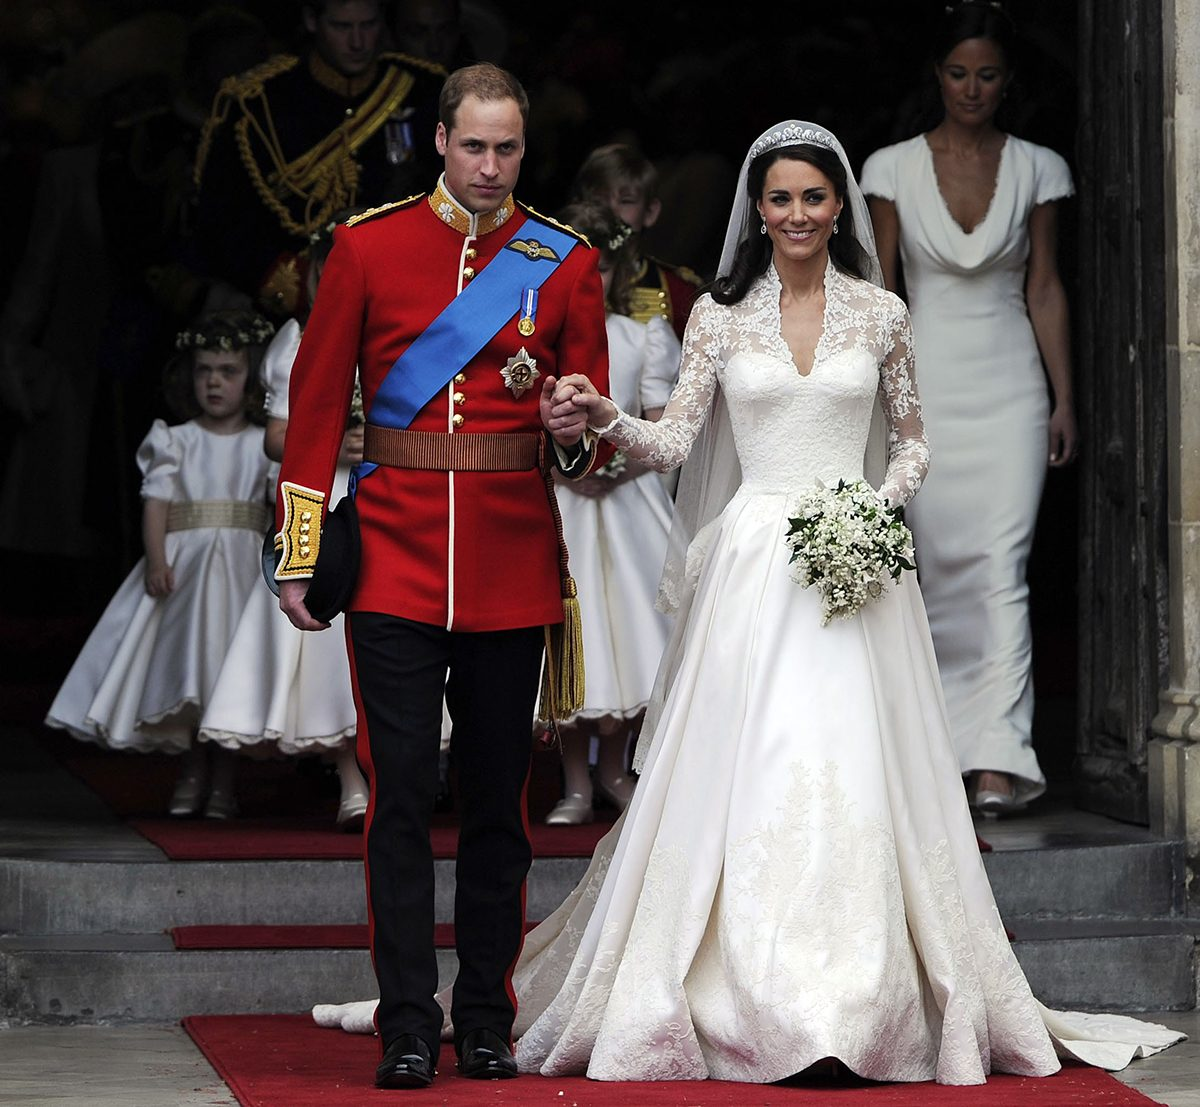 Prince Charles and Princess Diana's wedding - William and Kate's wedding